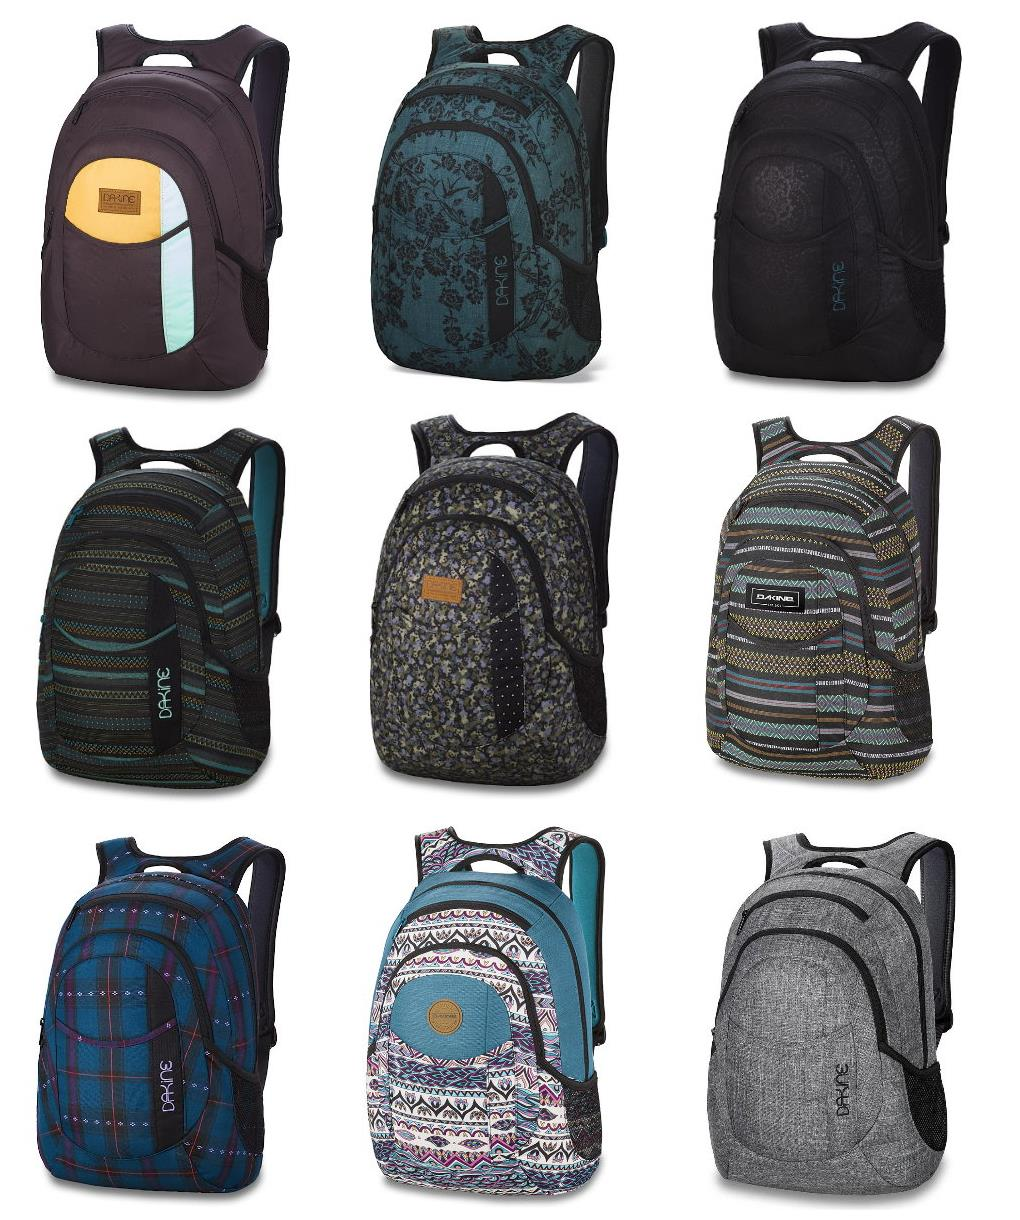 277a17aea4bb8 DAKINE GARDEN PACK Girls School Backpack Notebook Laptop Backpack 20L NEW  SELECTION